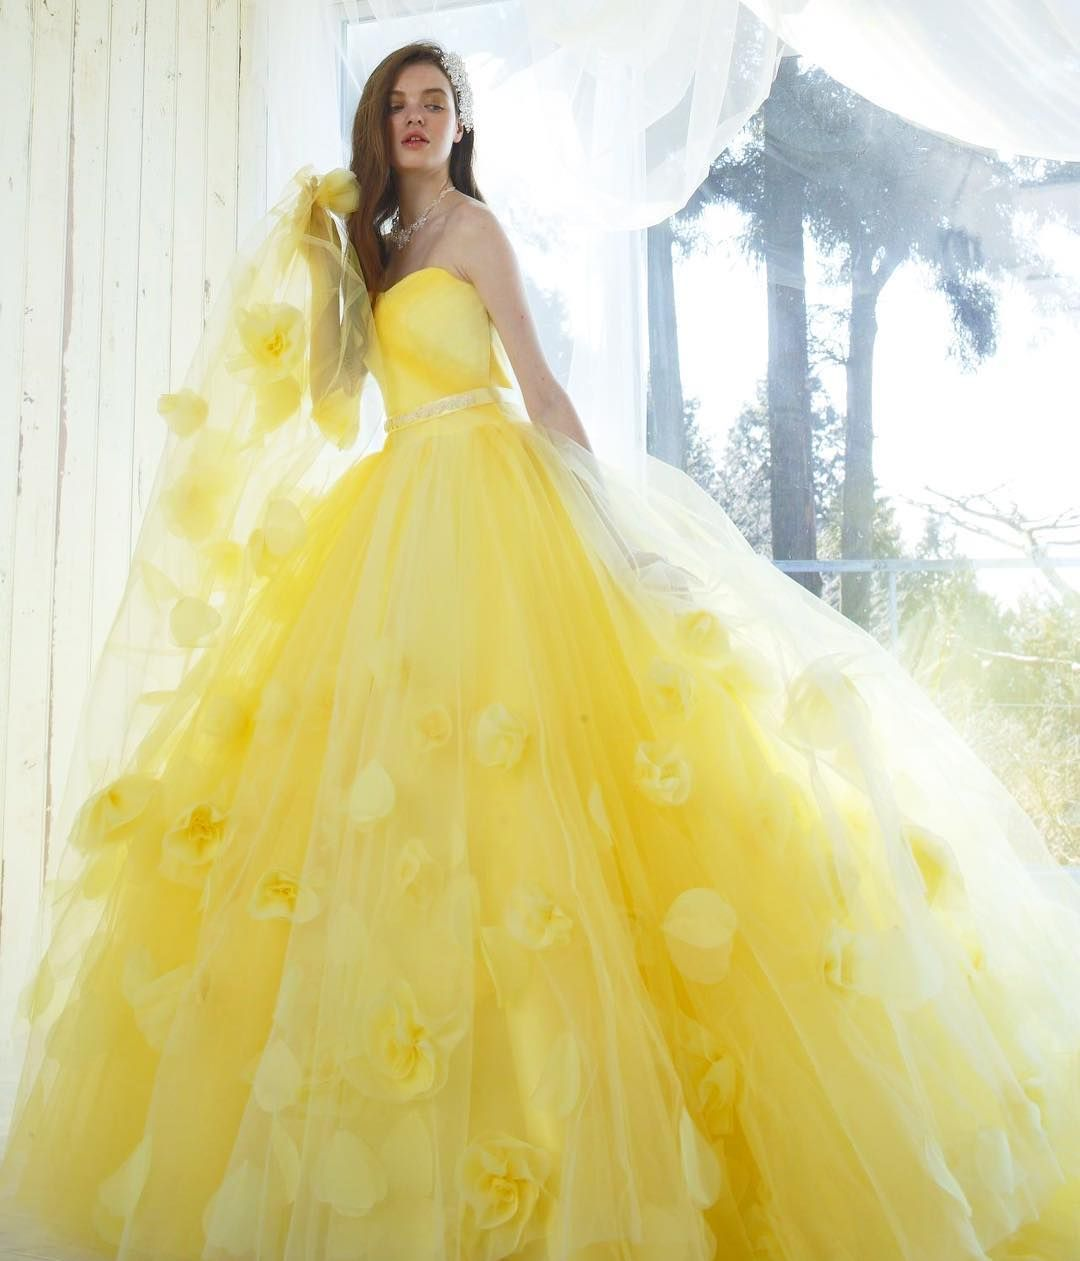 5a2afd4b06c9 Yellow Wedding Dress, Colored Wedding Dresses, Yellow Weddings, Gorgeous  Prom Dresses, Pretty